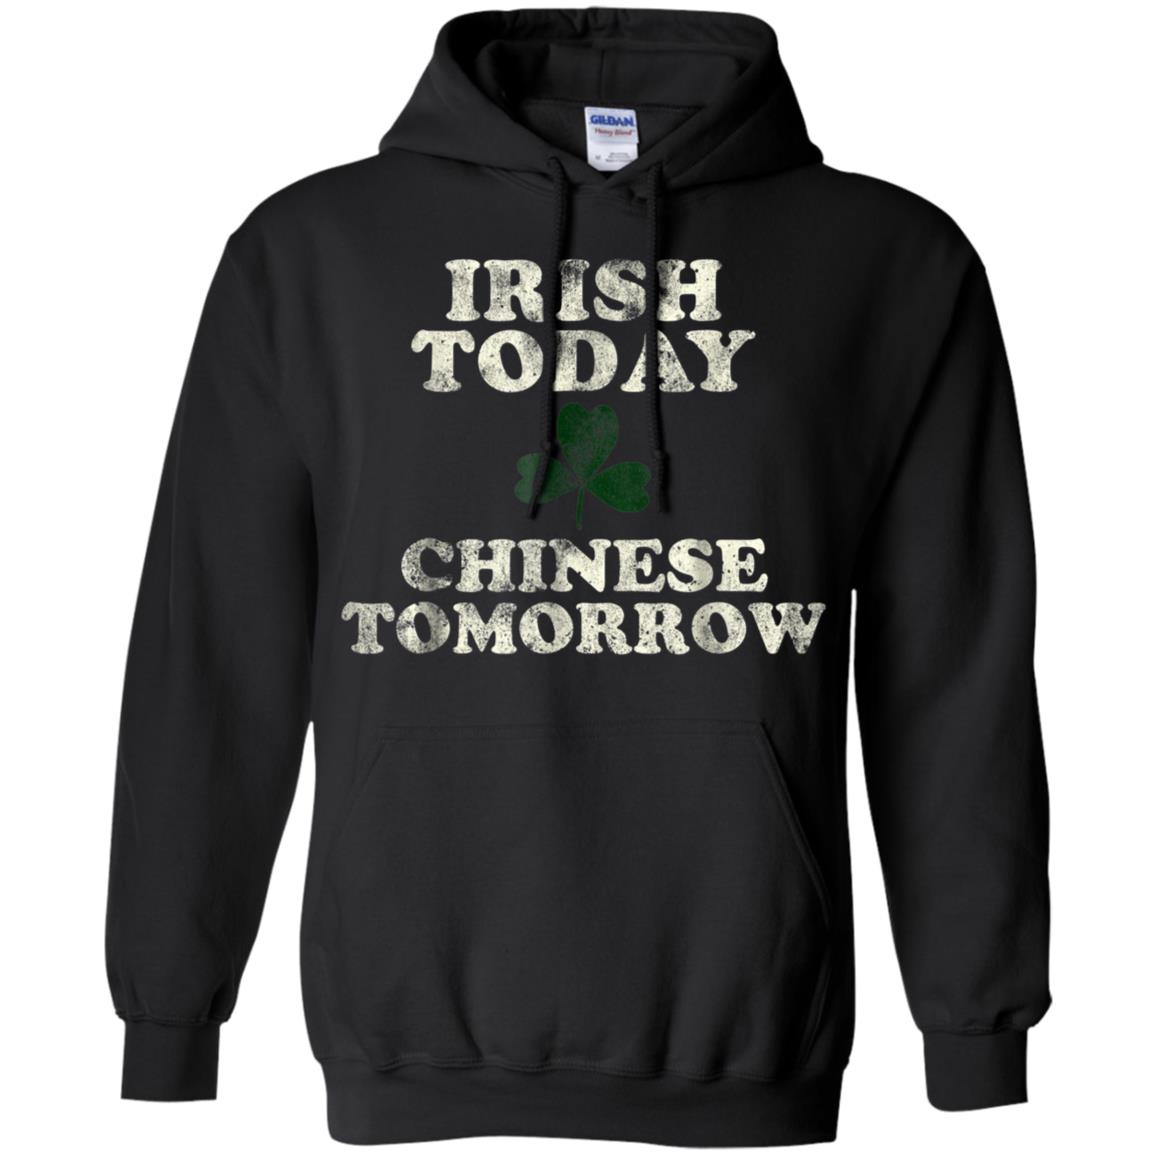 056f8c1262 Awesome funny chinese irish st. patrick's day shirt china asia ...